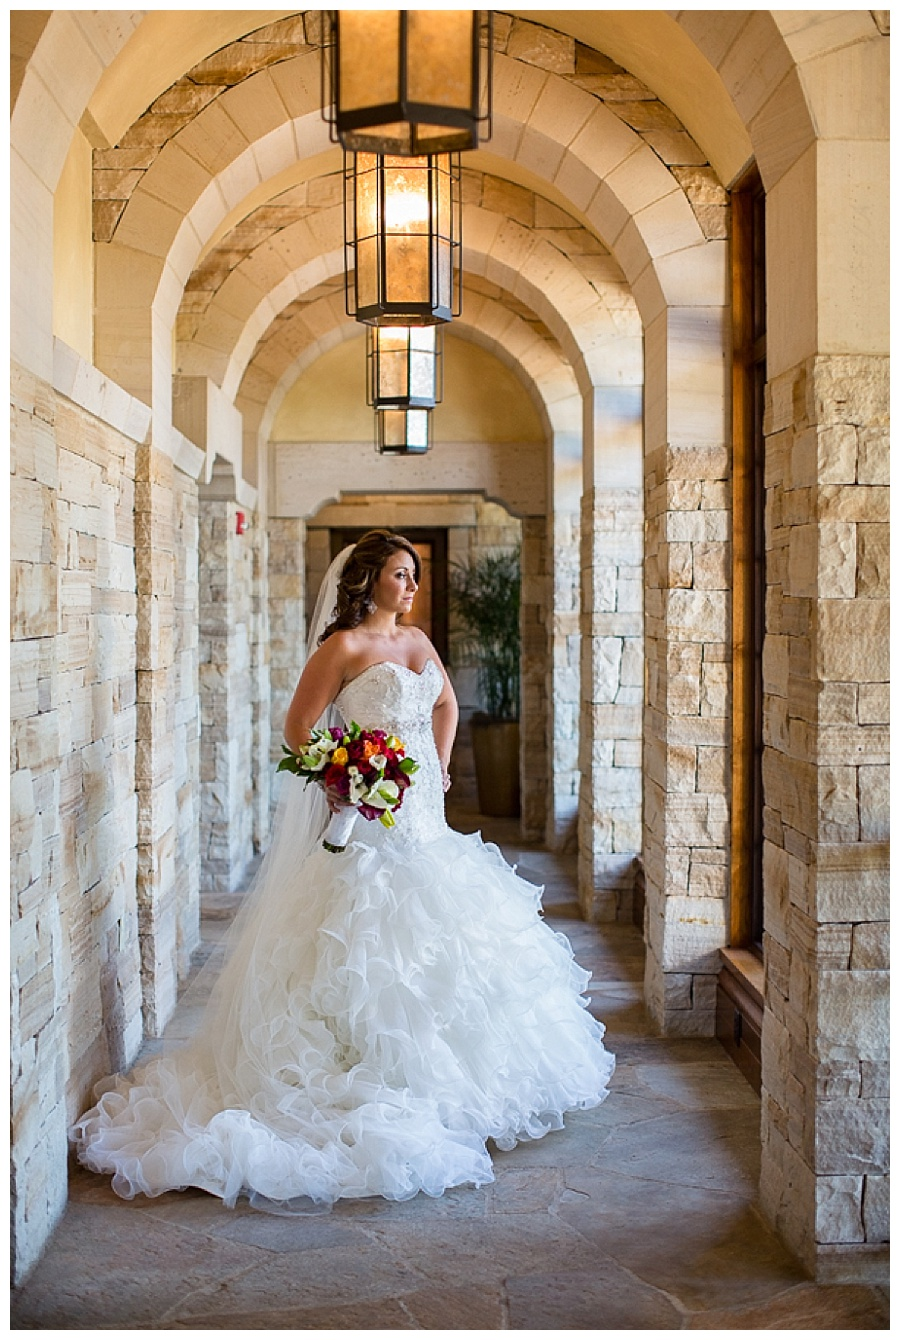 06 Bride in hallway at sanctuary golf course